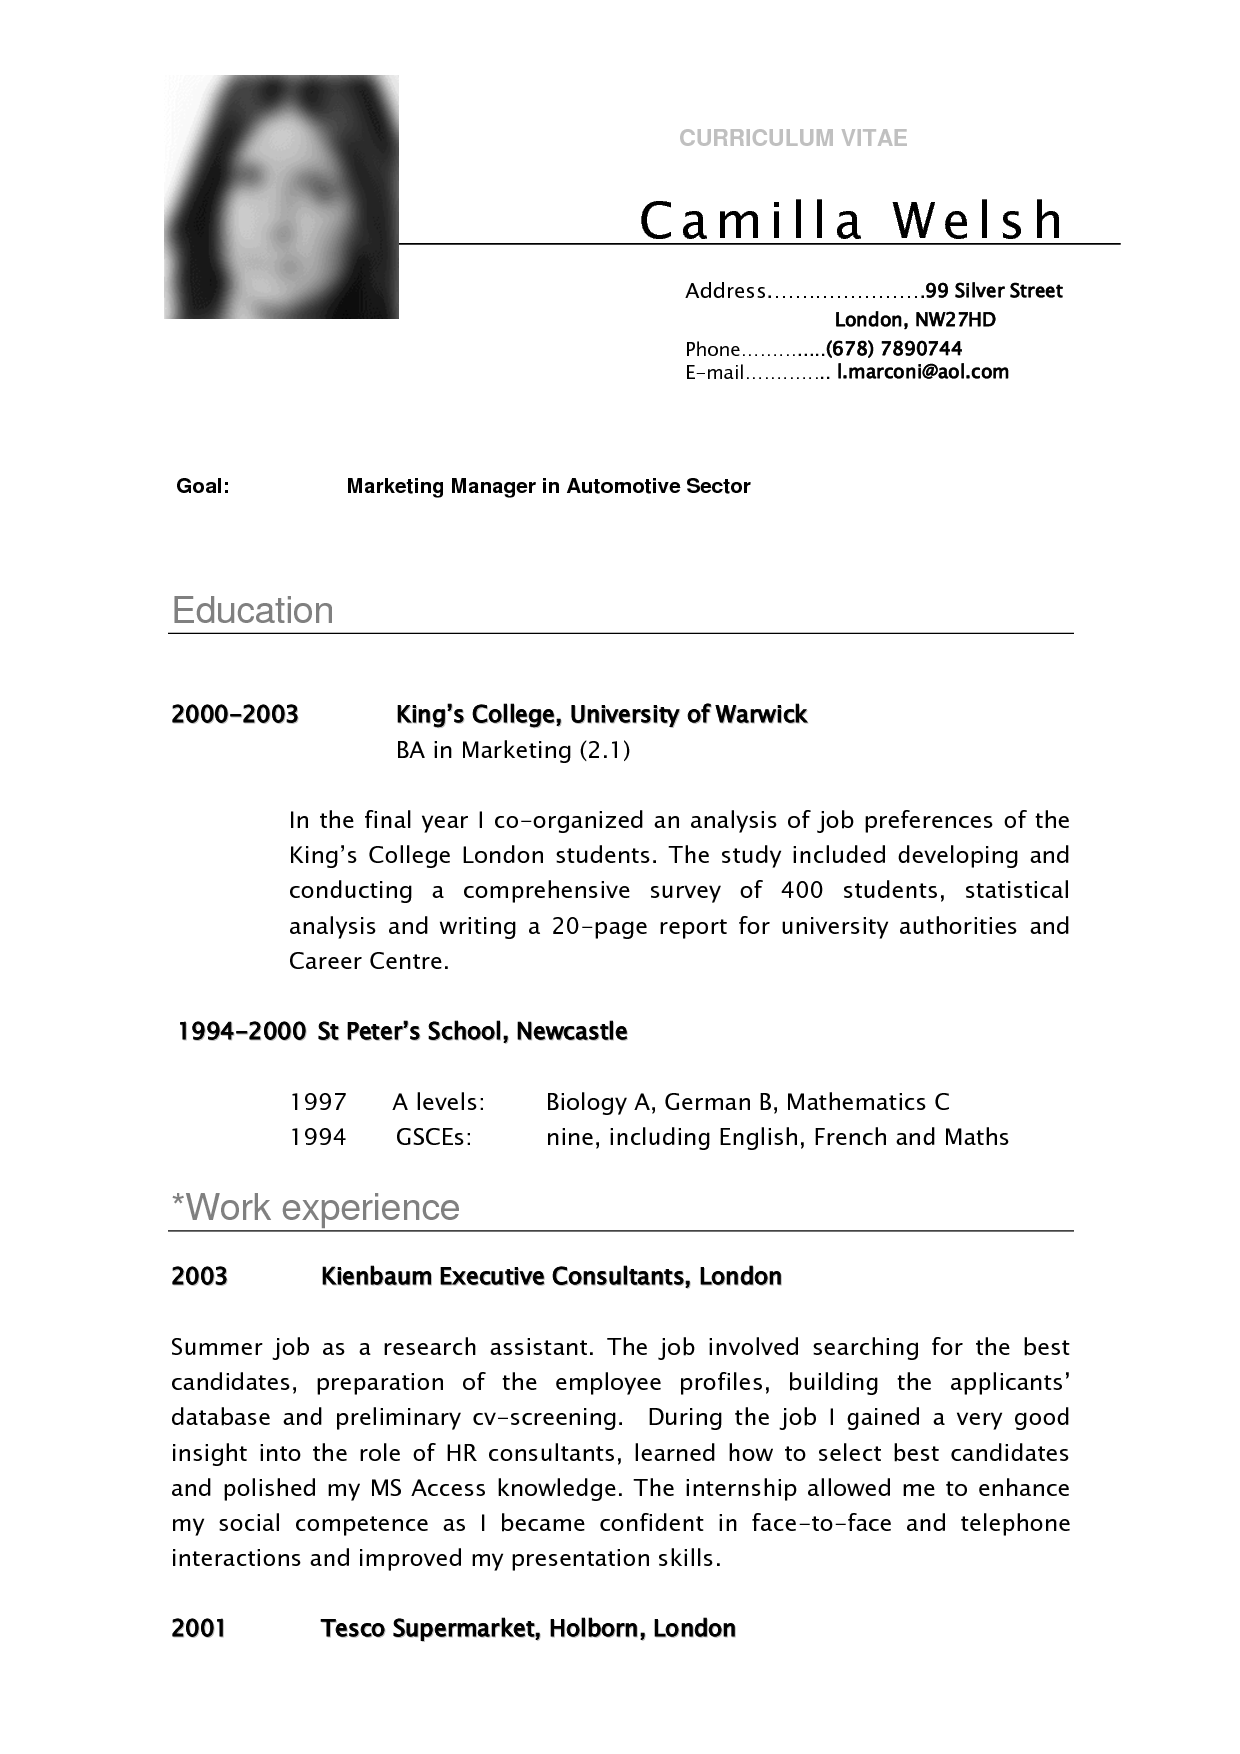 Resume Template Pinterest Cv Sample Curriculum Vitae Camilla Resume Pinterest